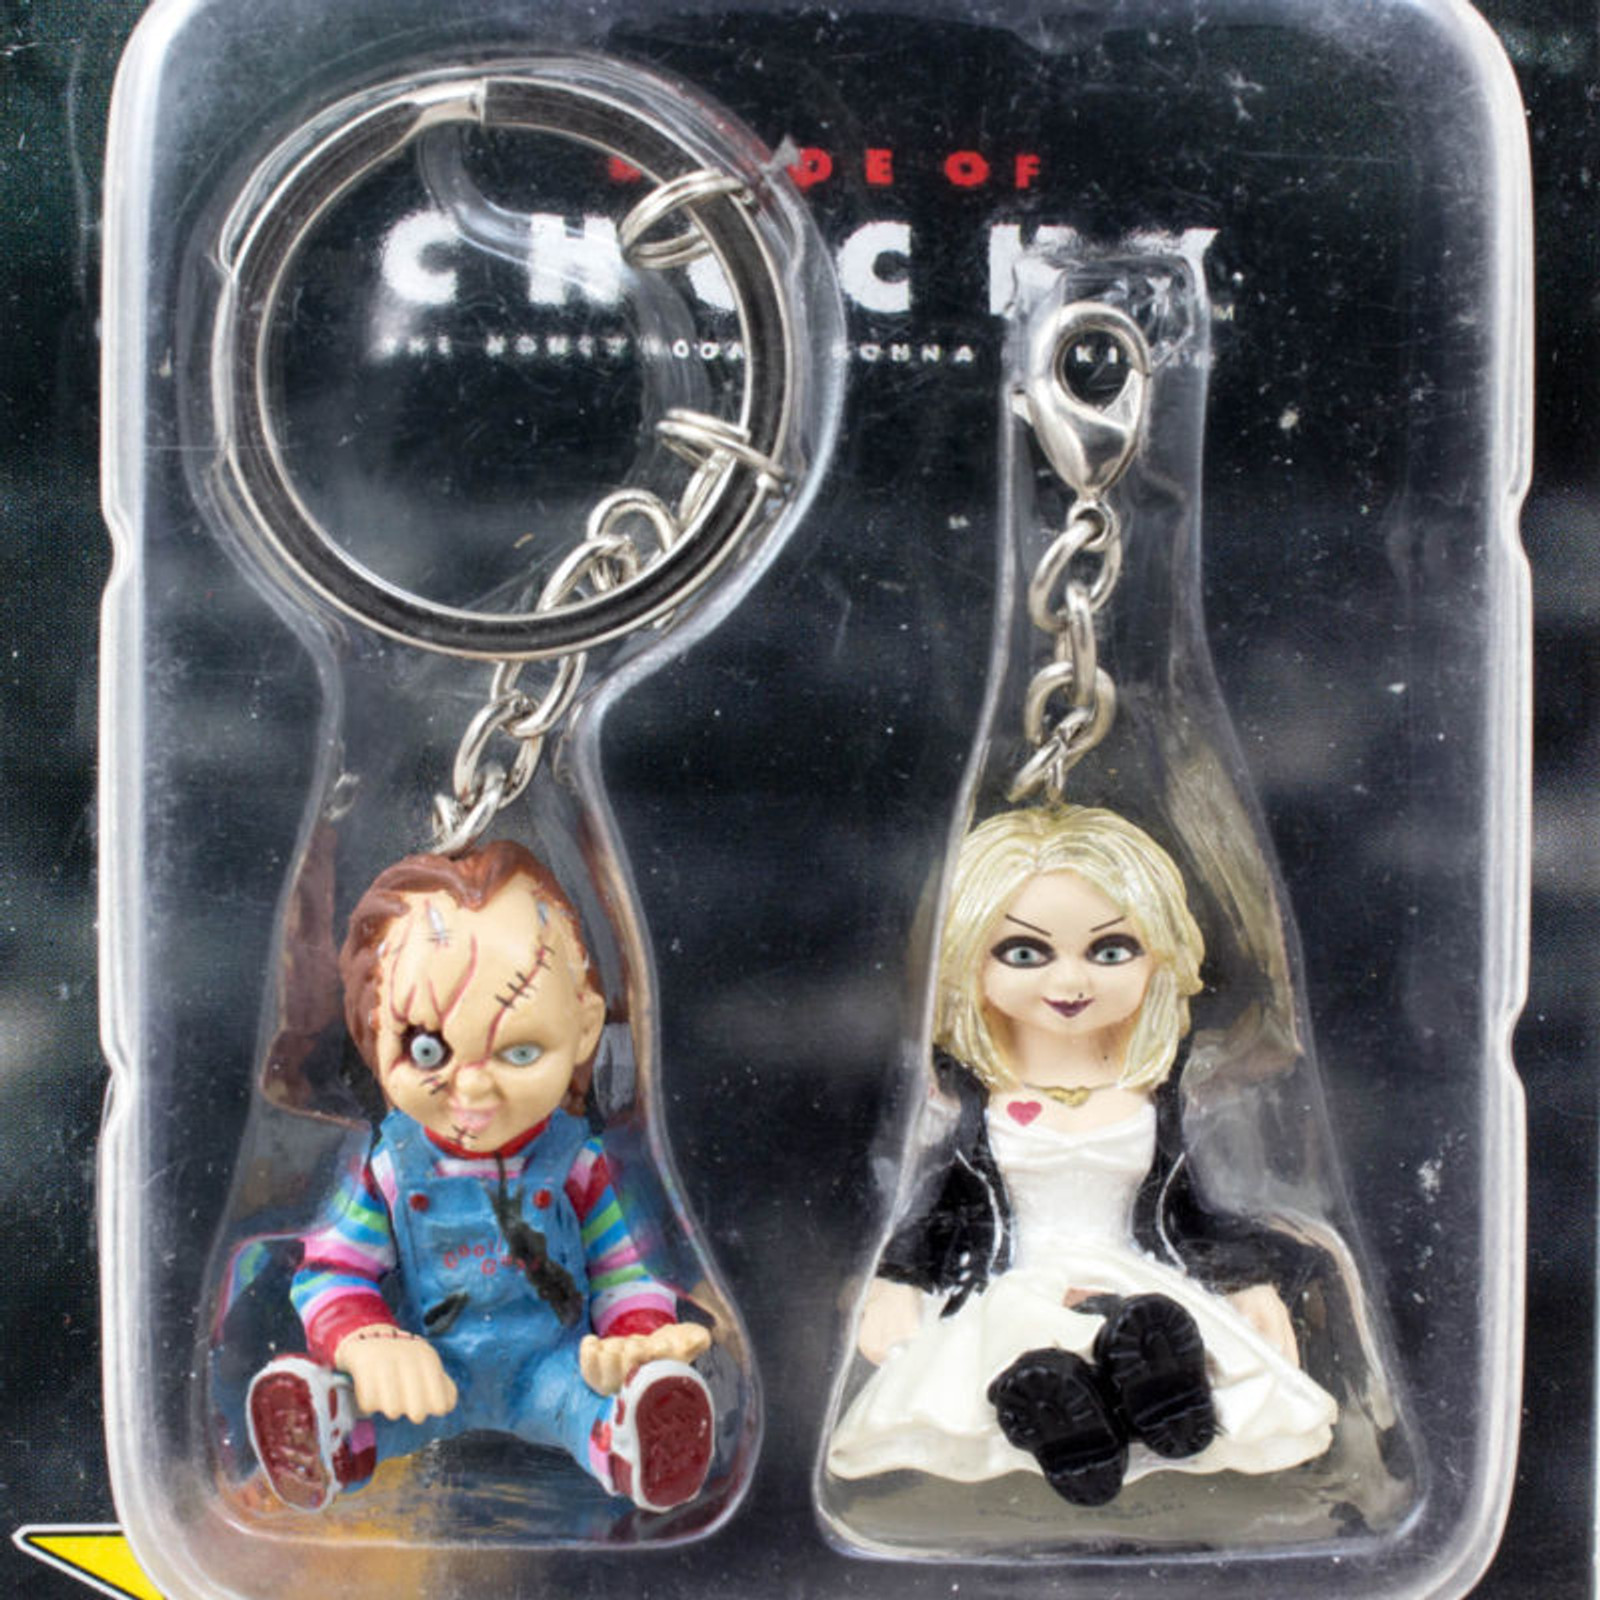 Bride of Chucky Tiffany Strap Universal Studios Japan Dream Rush 2 / Child's Play